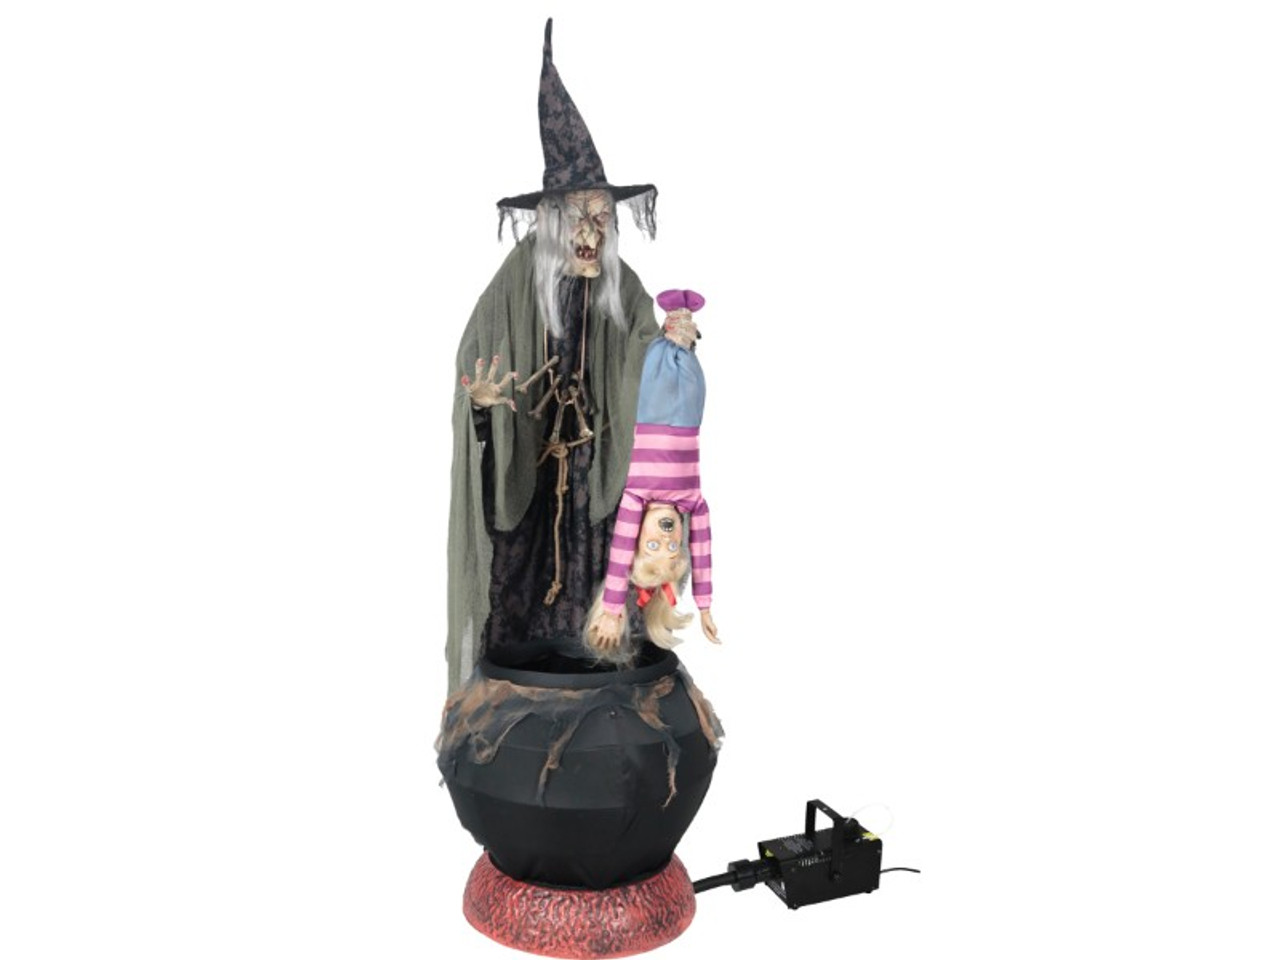 new 2017 animated brewing witch cauldron w child give your guests a hair